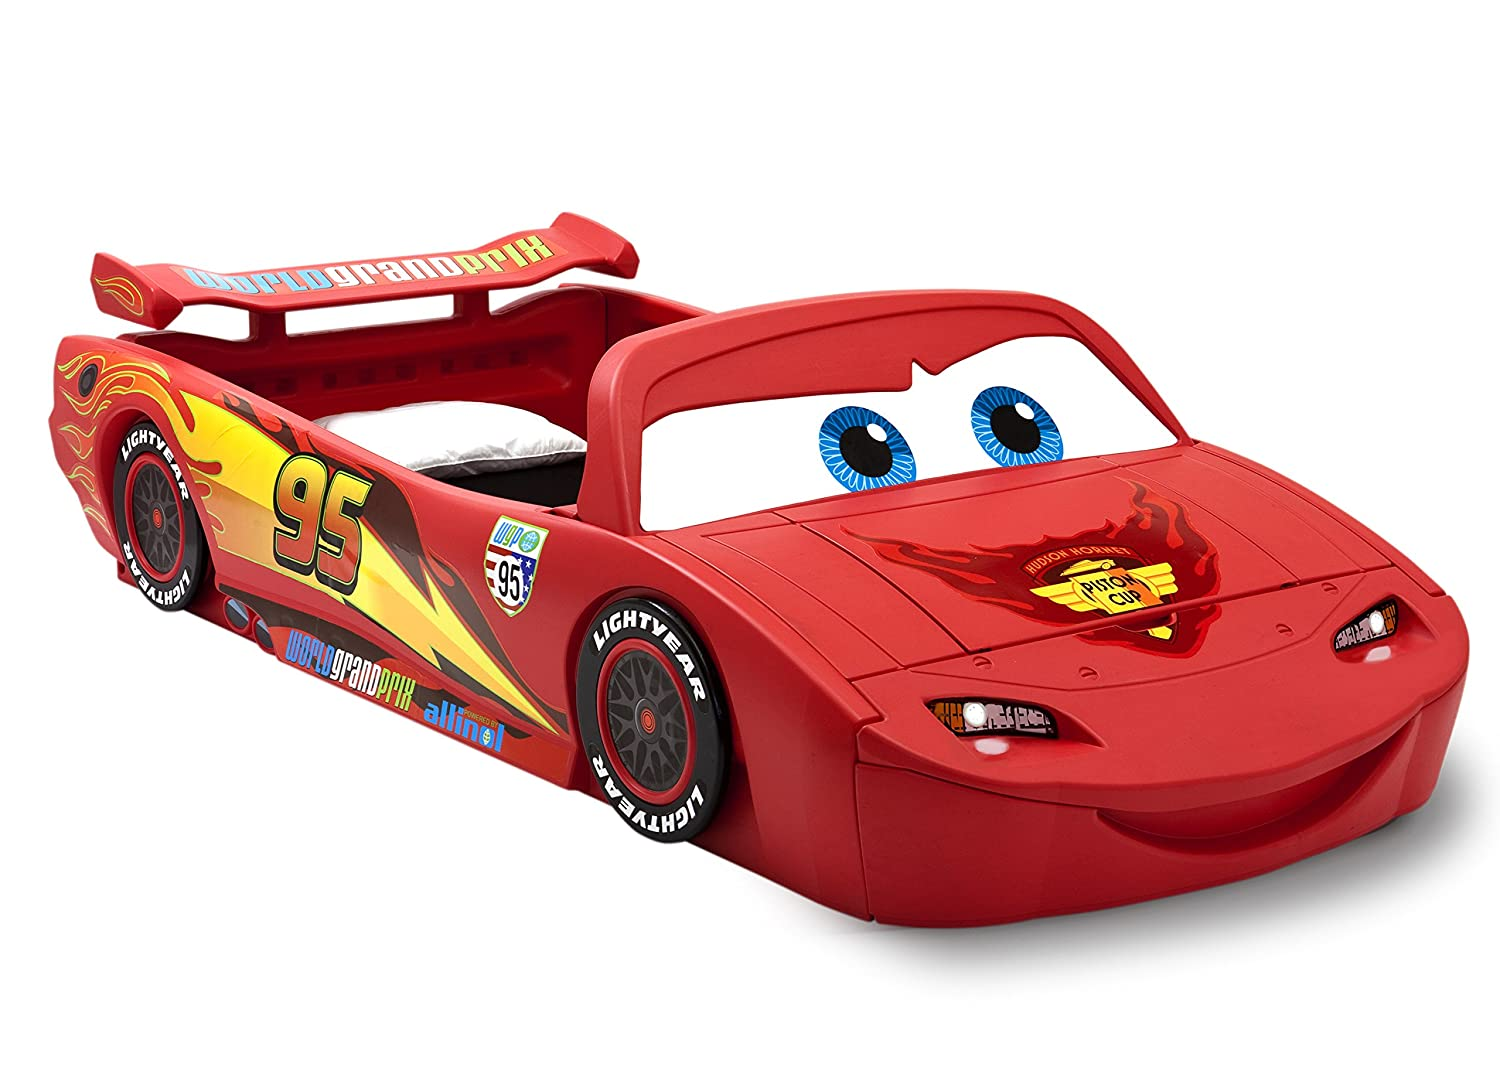 Amazon.com : Delta Children Cars Lightning Mcqueen Toddler To Twin Bed With  Lights And Toy Box, Disney/Pixar Cars : Baby